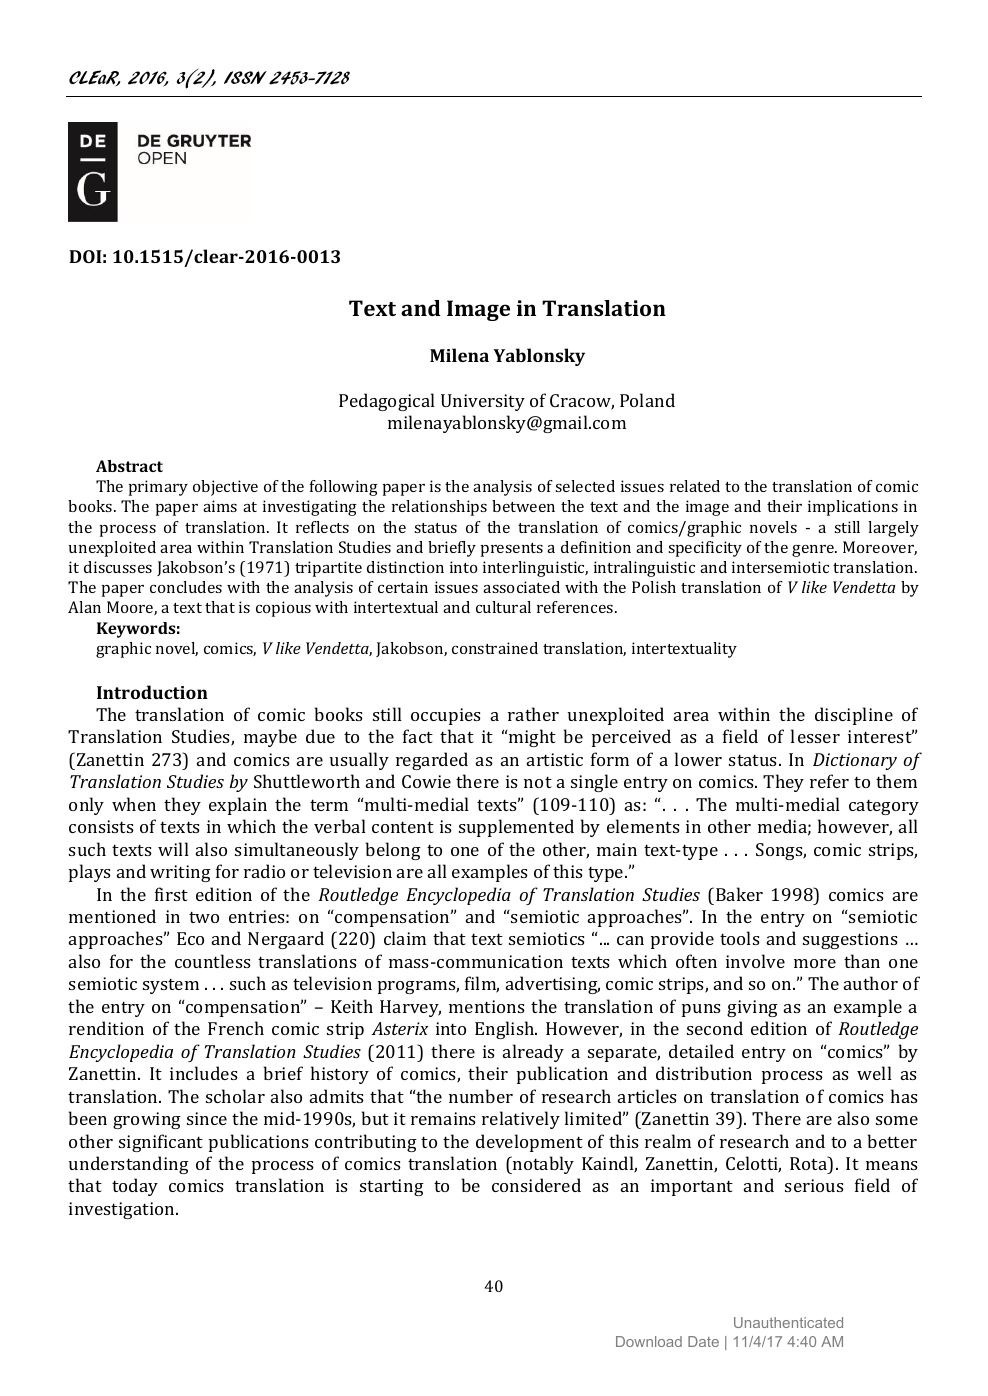 Text and Image in Translation – topic of research paper in